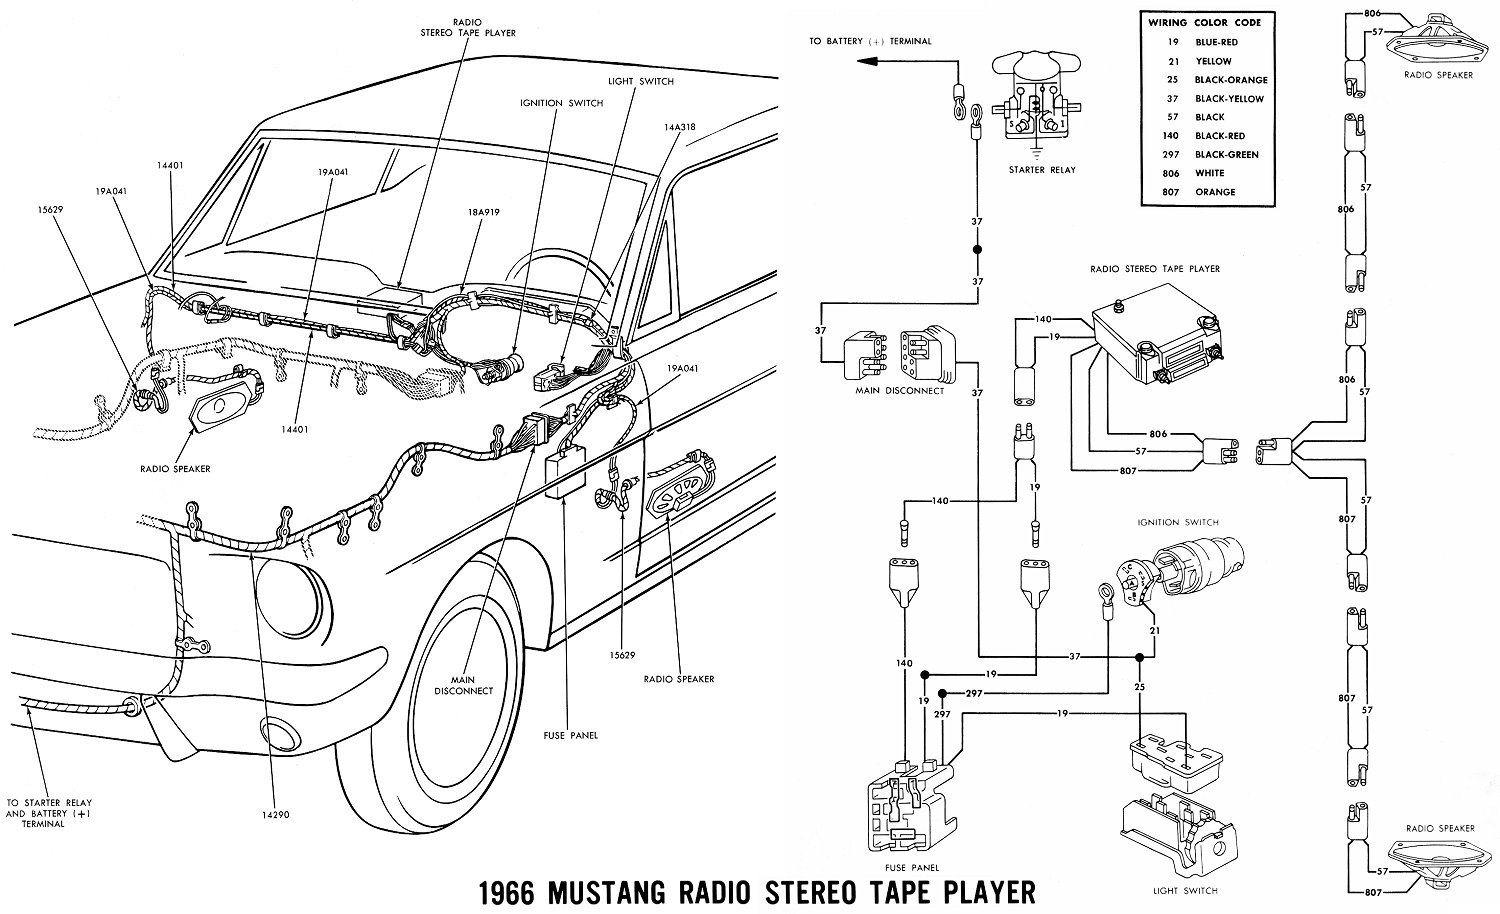 1966 Mustang Wiring Diagrams furthermore Trailer Hitch Wiring Diagram in addition Maytag Dryer Wiring Diagram besides AT0t 9478 together with Best Idea 1999 Chevy Tahoe Wiring Diagram 99 Radio. on ford mustang stereo wiring diagram